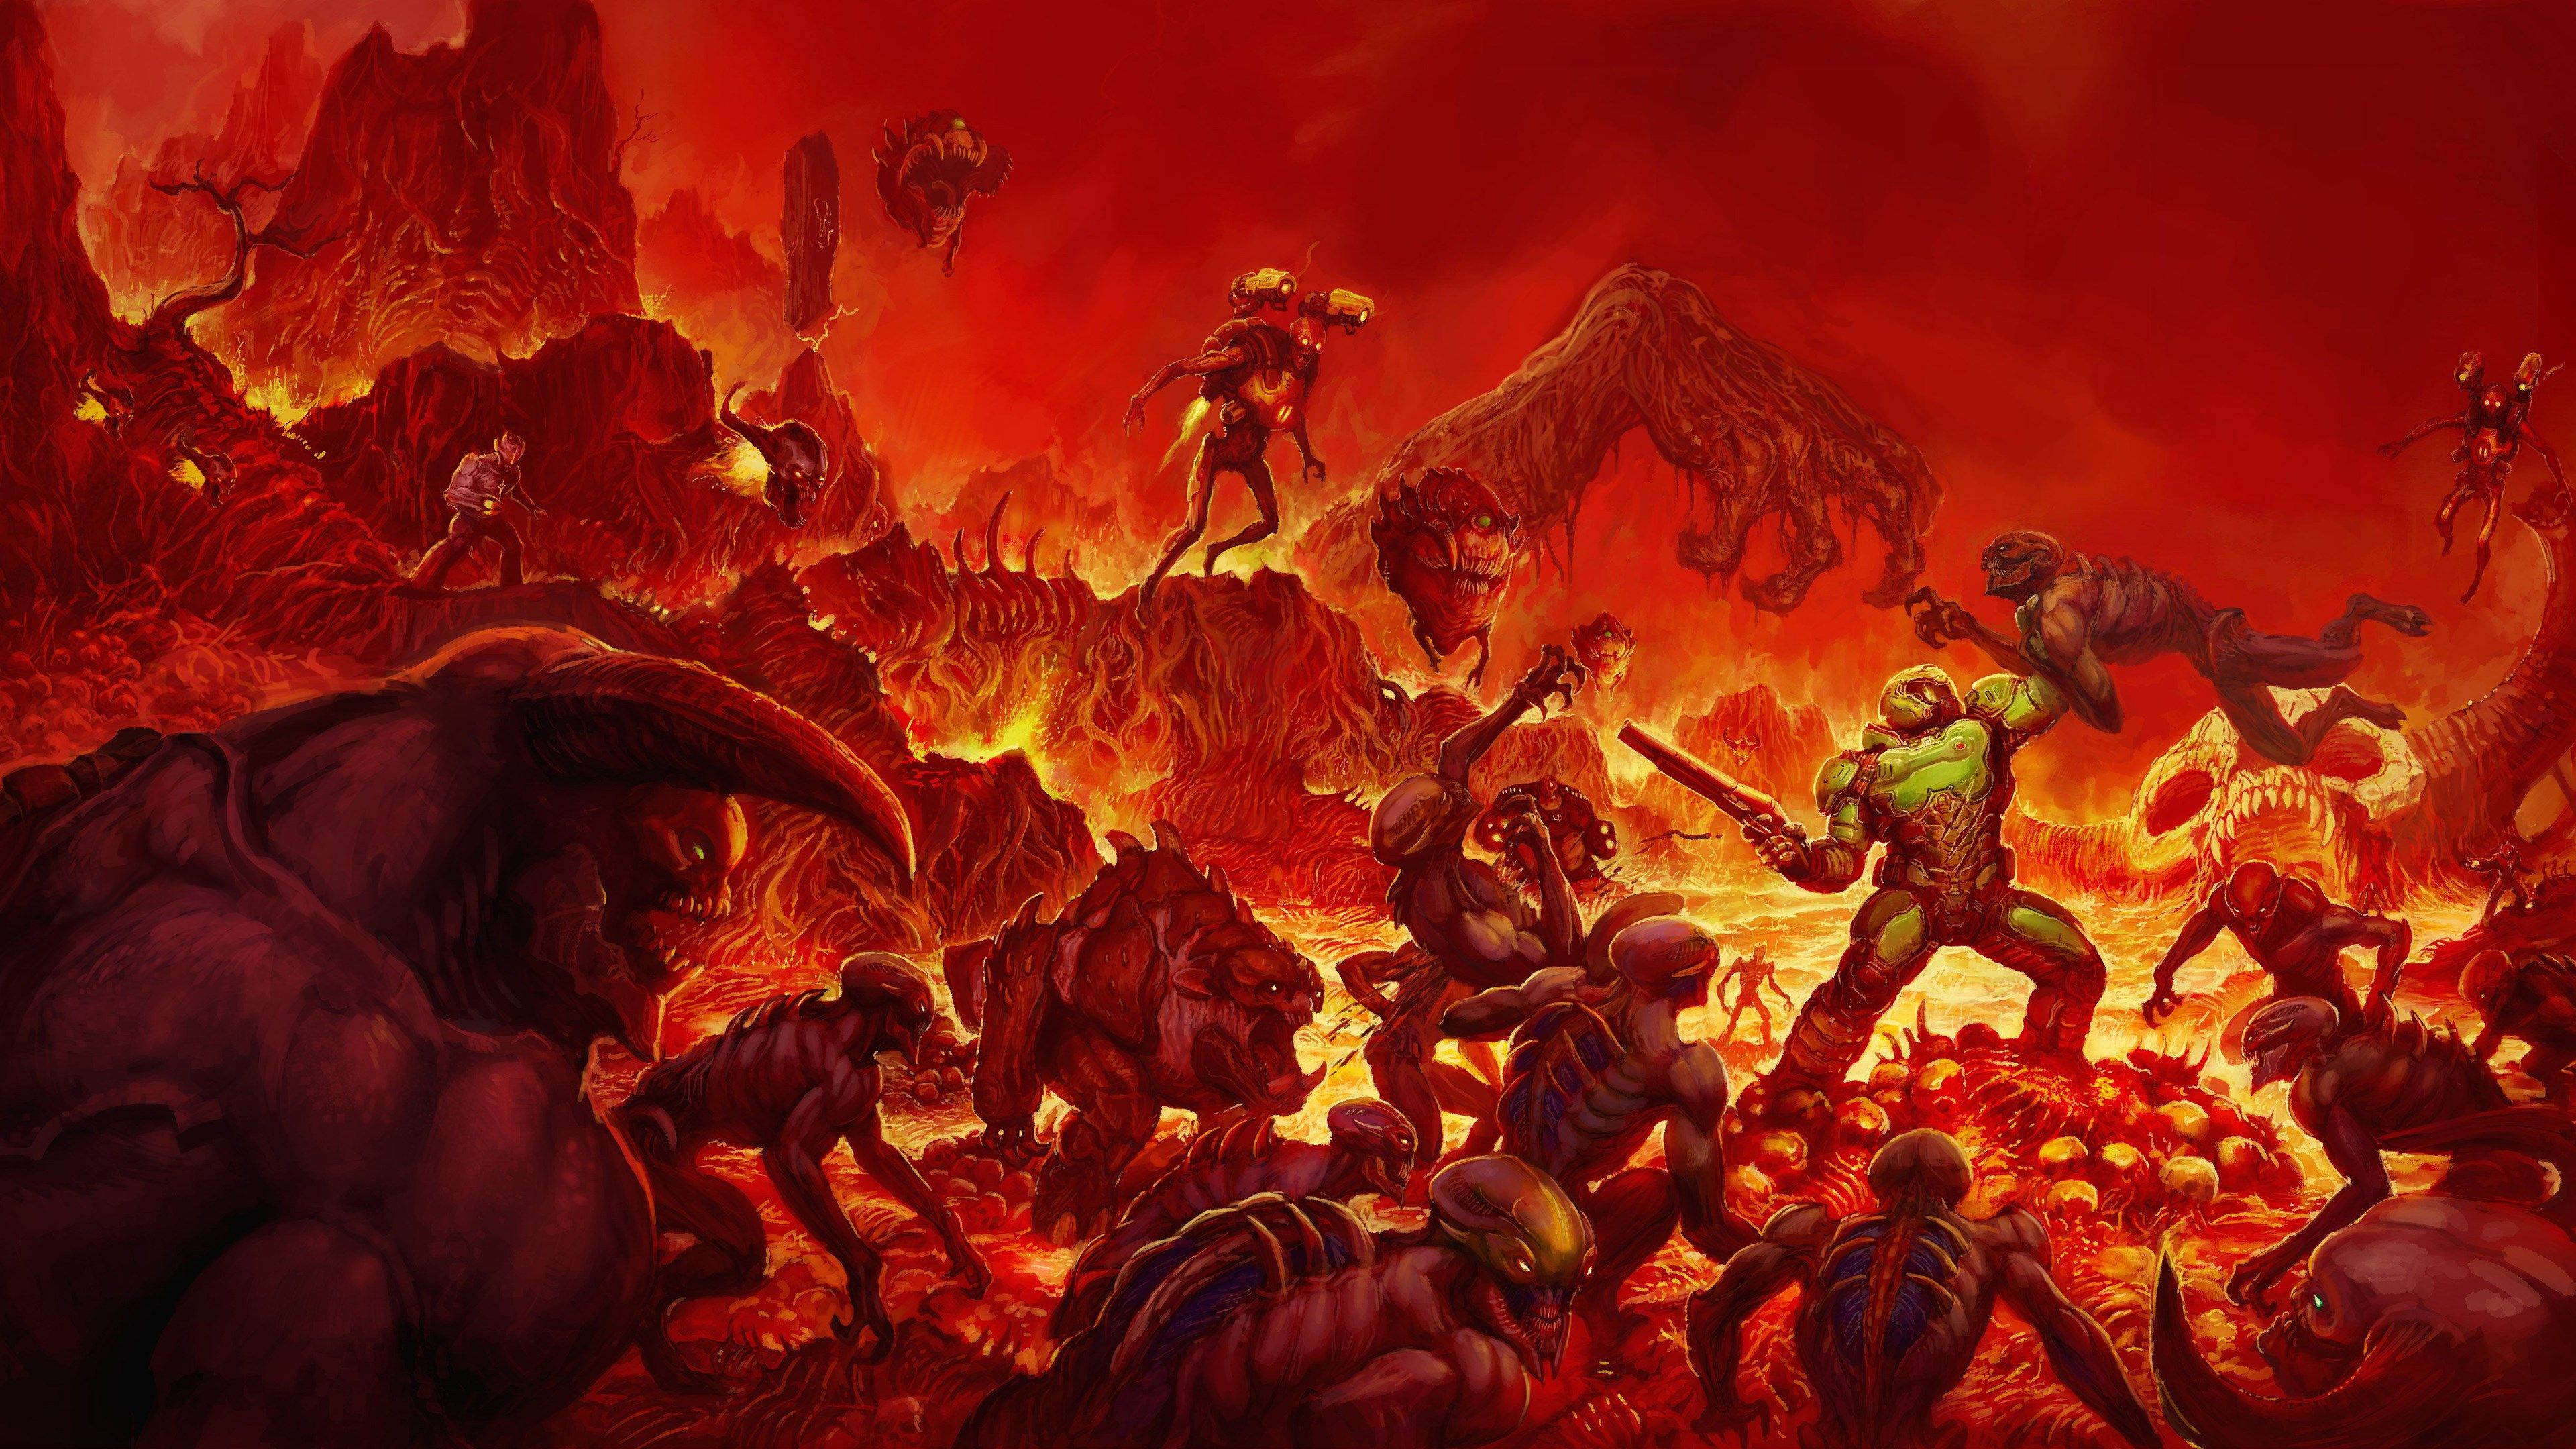 3840x2160 Hd Wallpaper Doom 2016 Doom 2016 Doom 4 Doom Cover